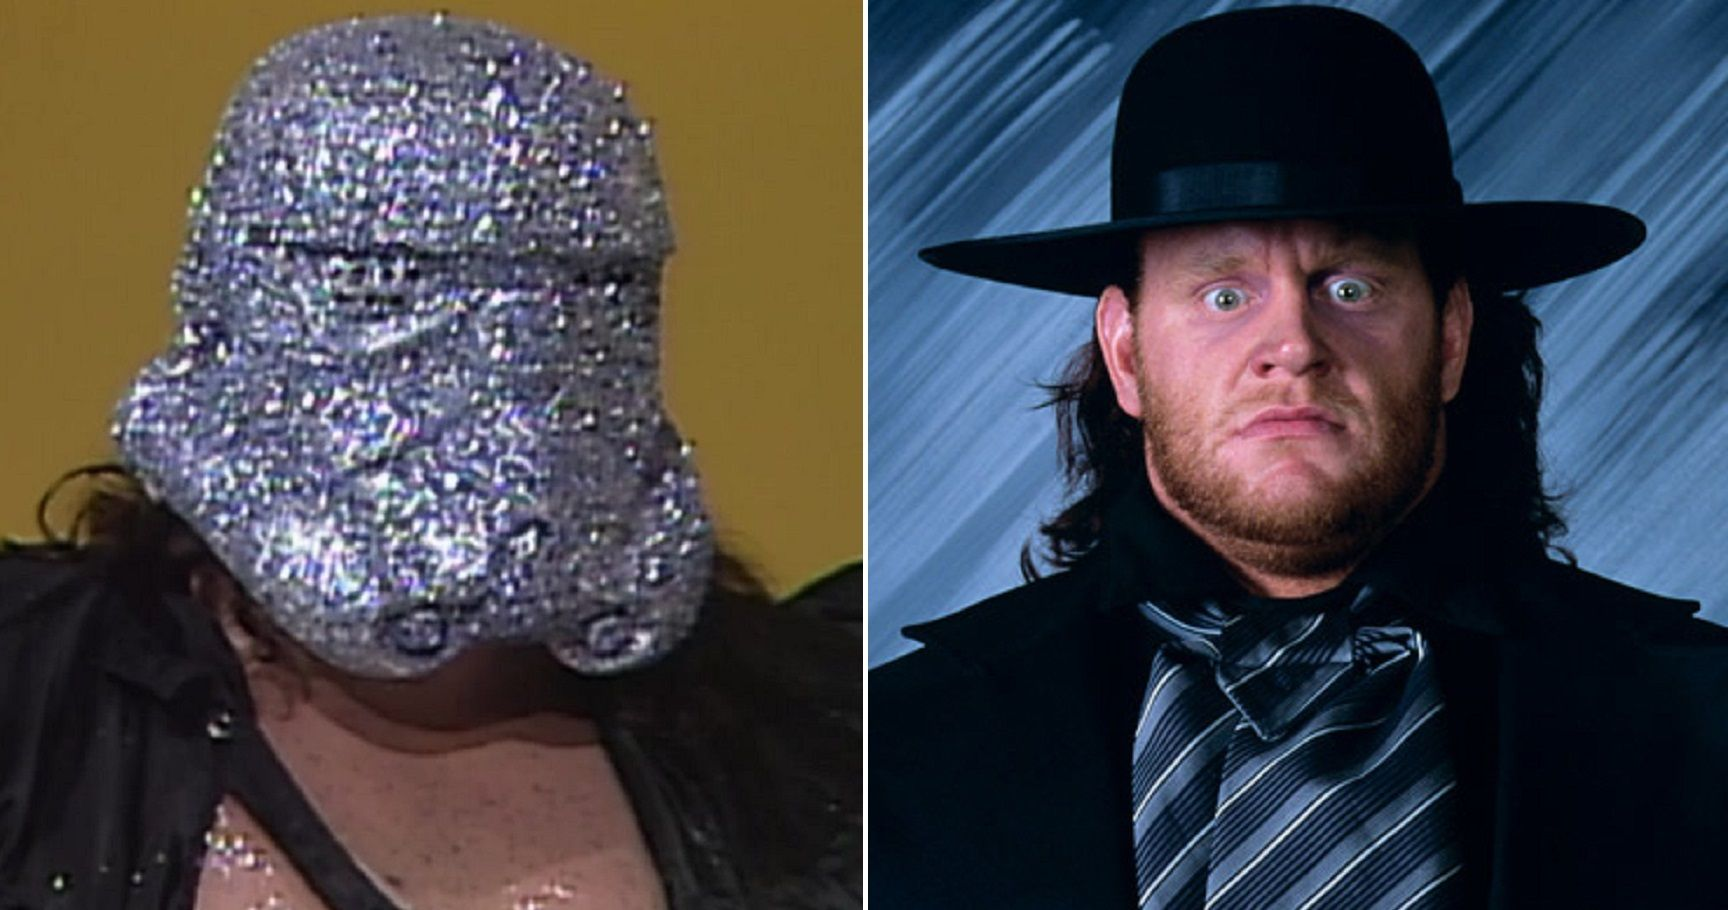 The 10 Worst and 10 Best Wrestling Gimmicks Ever